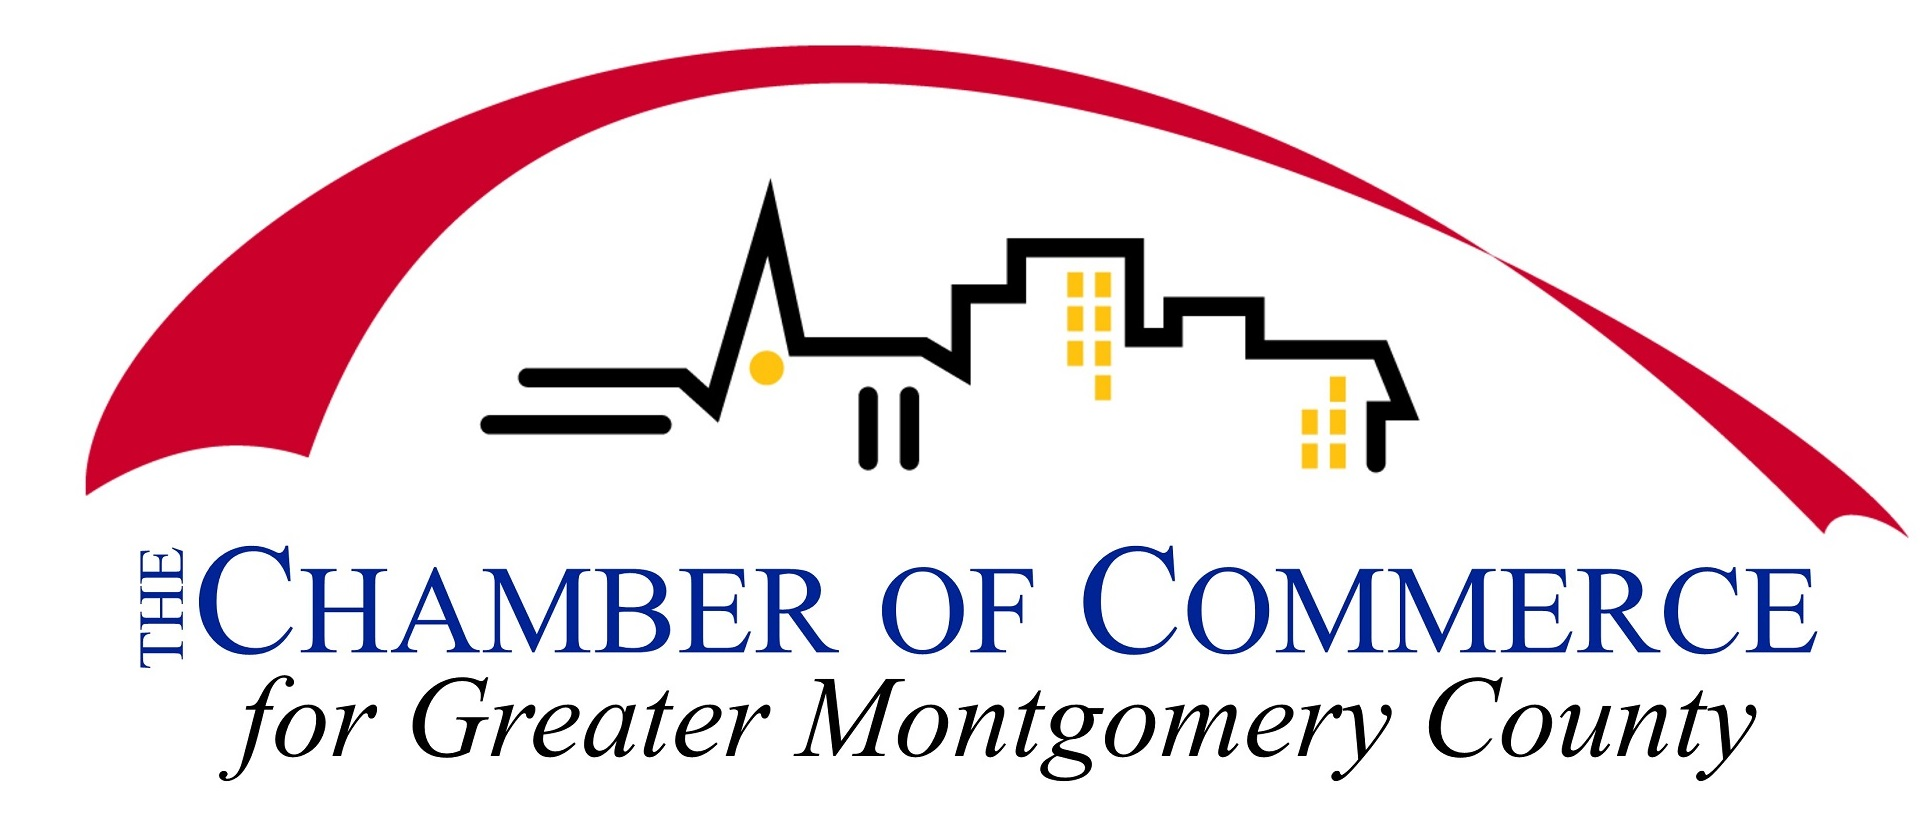 The Chamber of Commerce for Greater Montgomery County serving the Indian Valley, North Penn, Wissahickon regions and surrounding communities. Greater Montgomery County Chamber PA